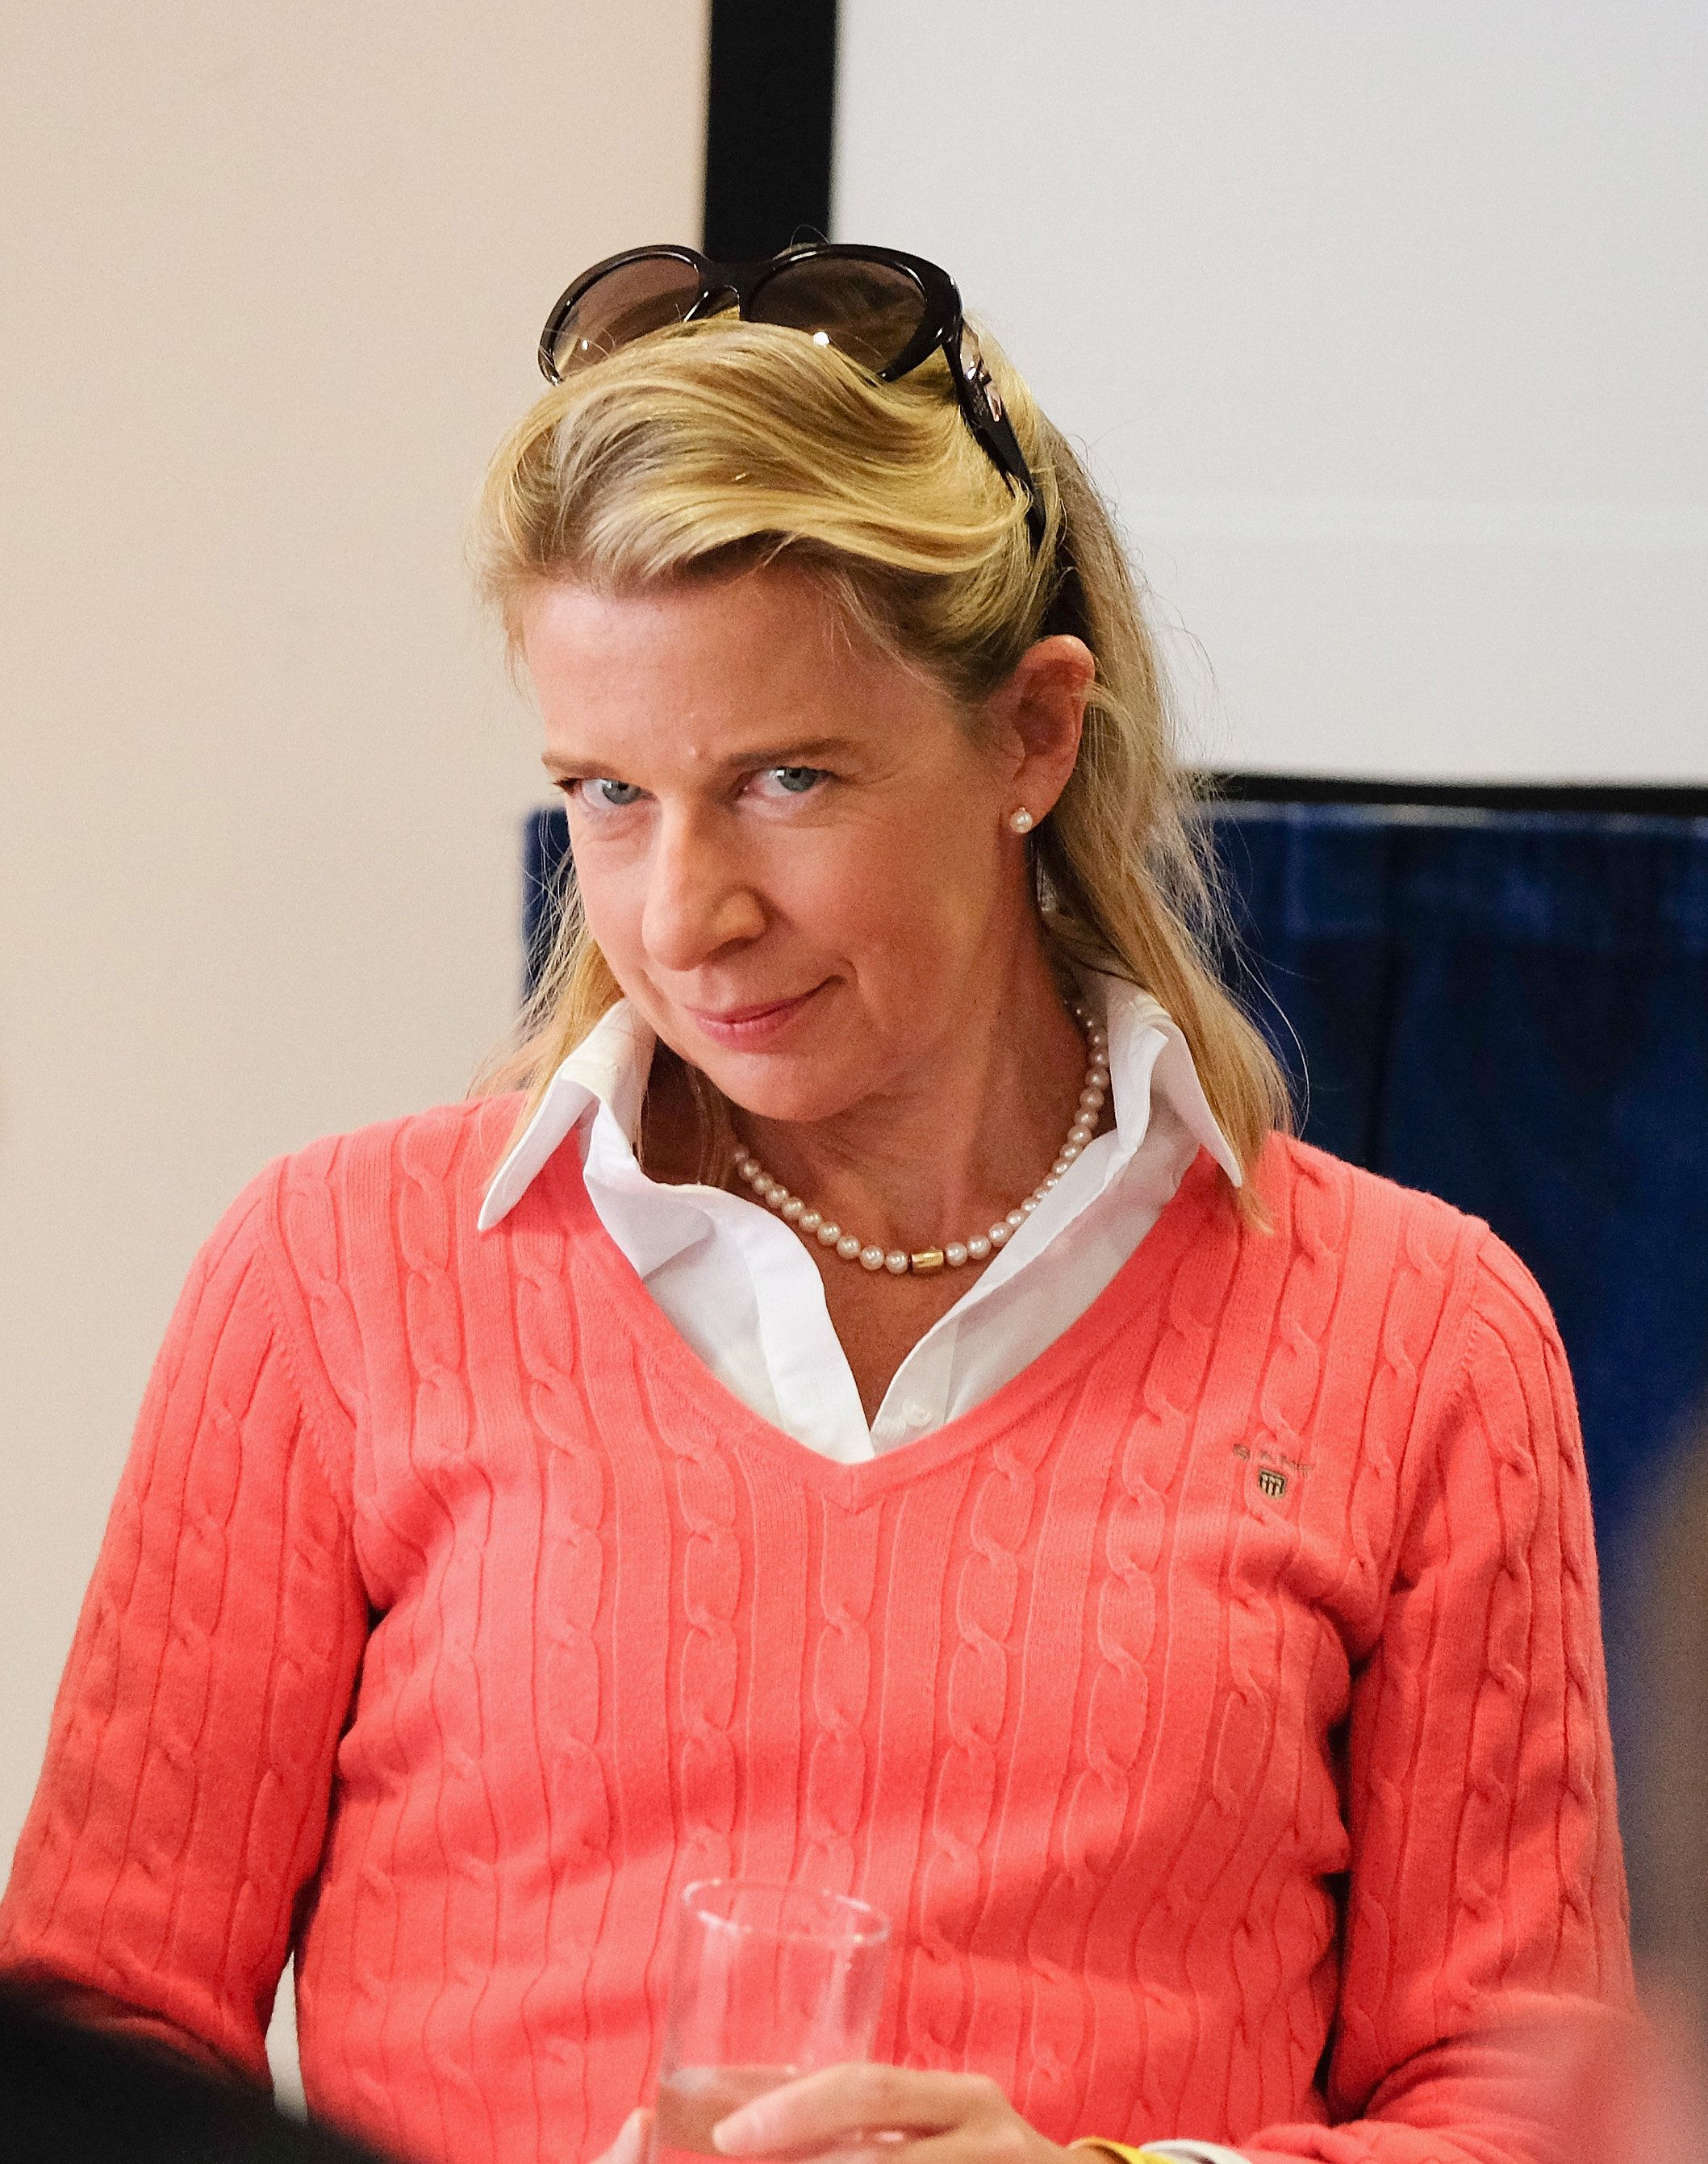 Katie Hopkins Says She's A 'True Feminist' And Women 'Already Have